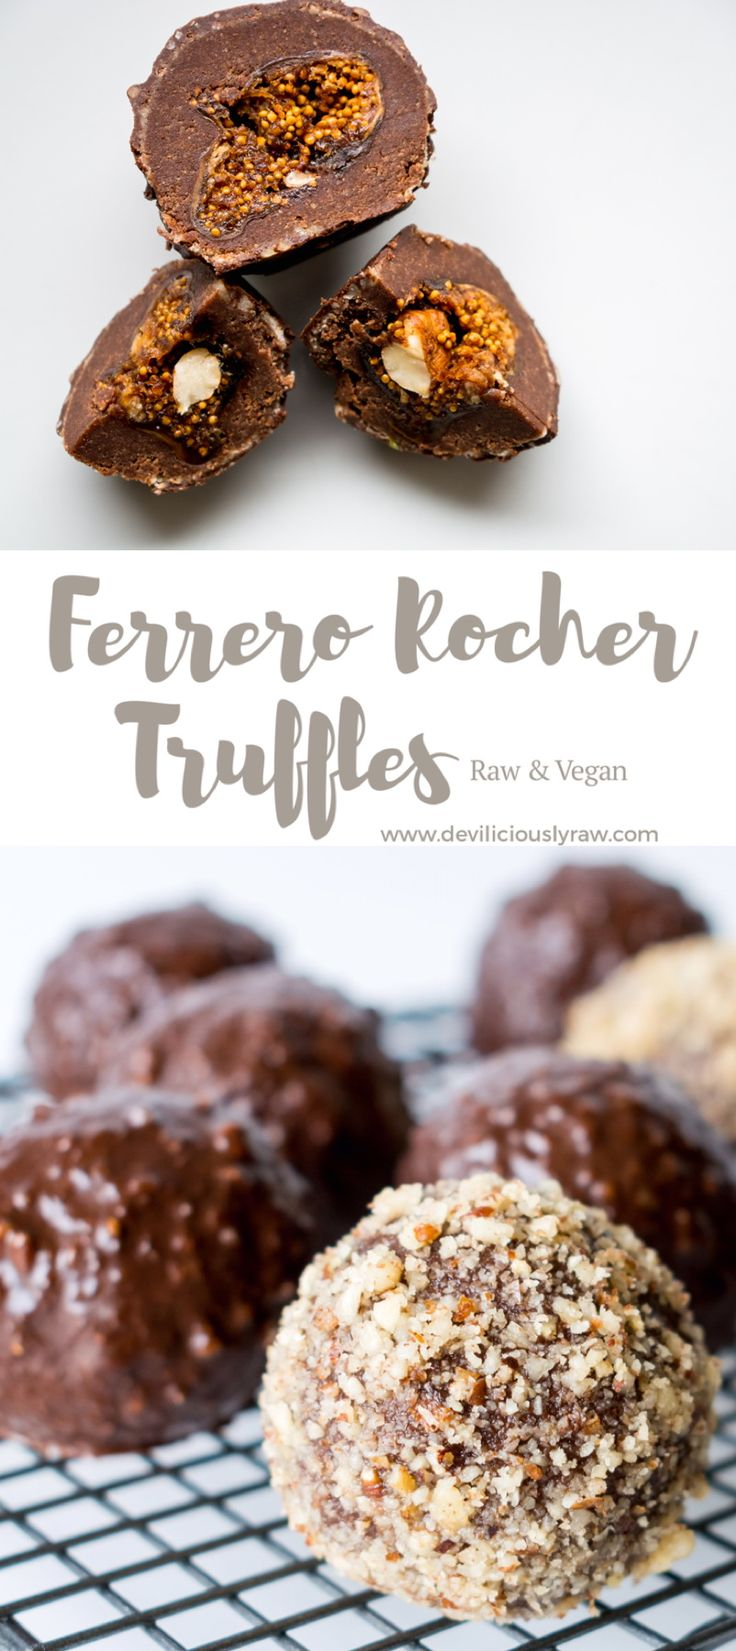 #raw #vegan Ferrero Rocher Truffles from Deviliciously Raw